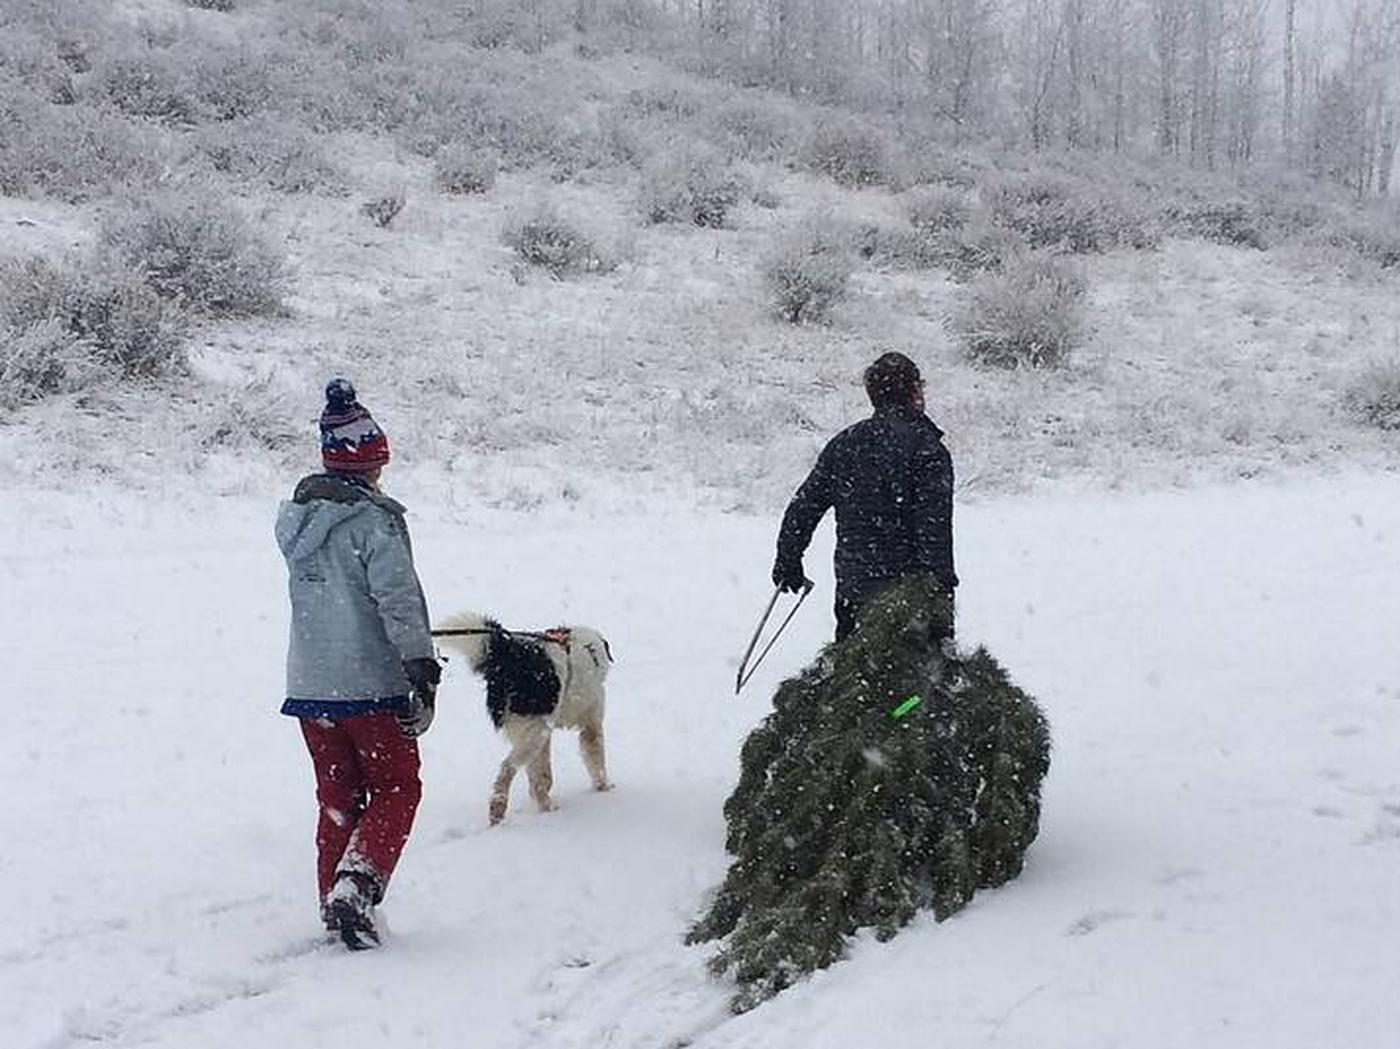 2 Forest Users harvesting a Christmas TreeFamily & Friends Celebrating the Season